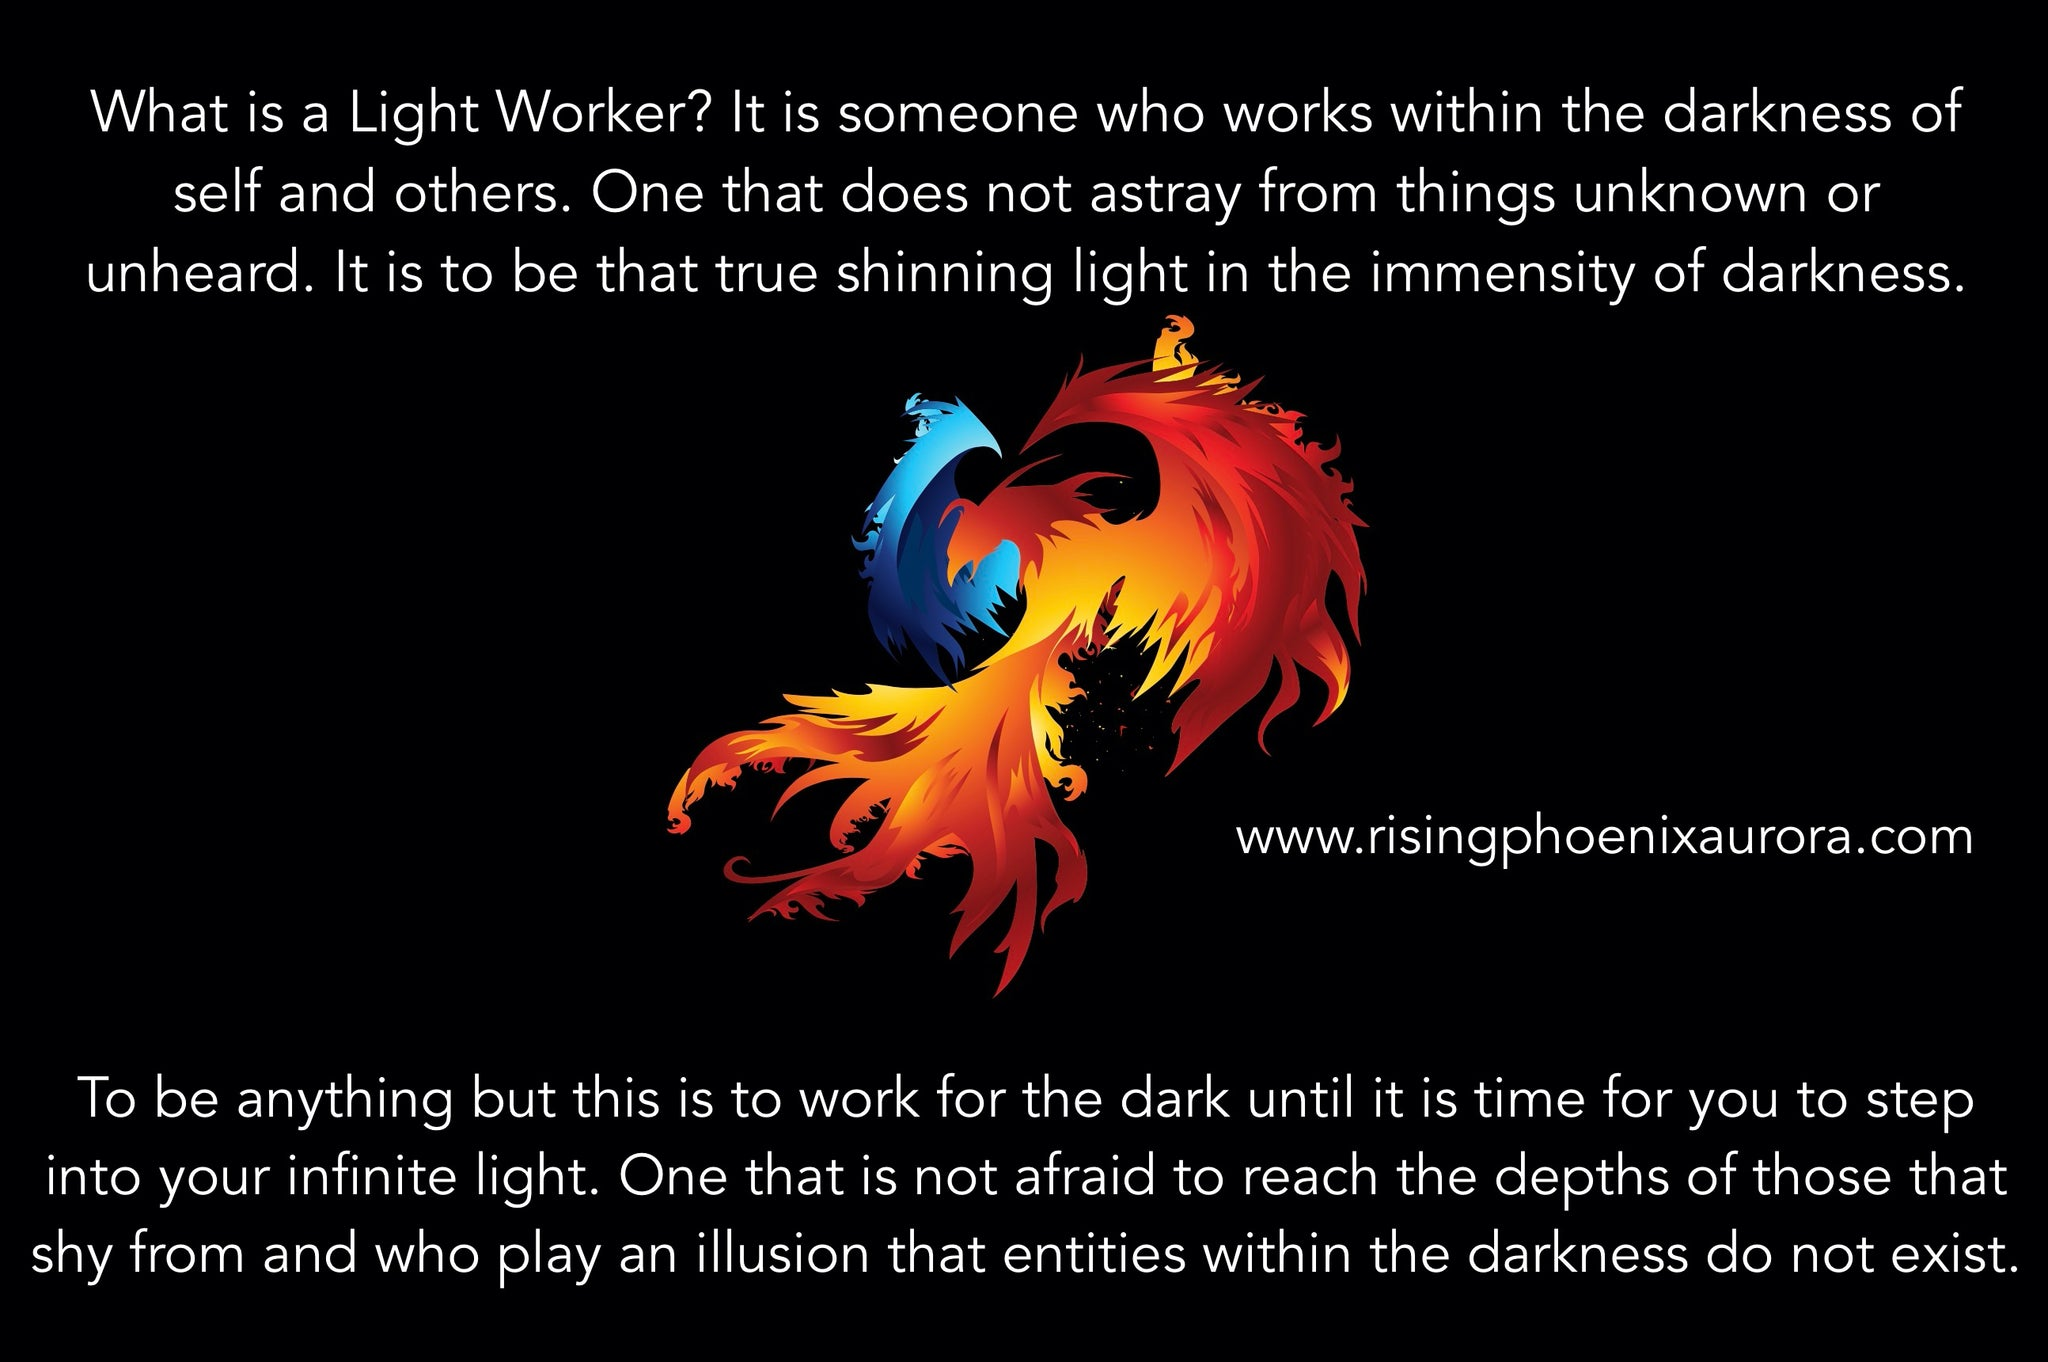 The Definition To A Light Worker